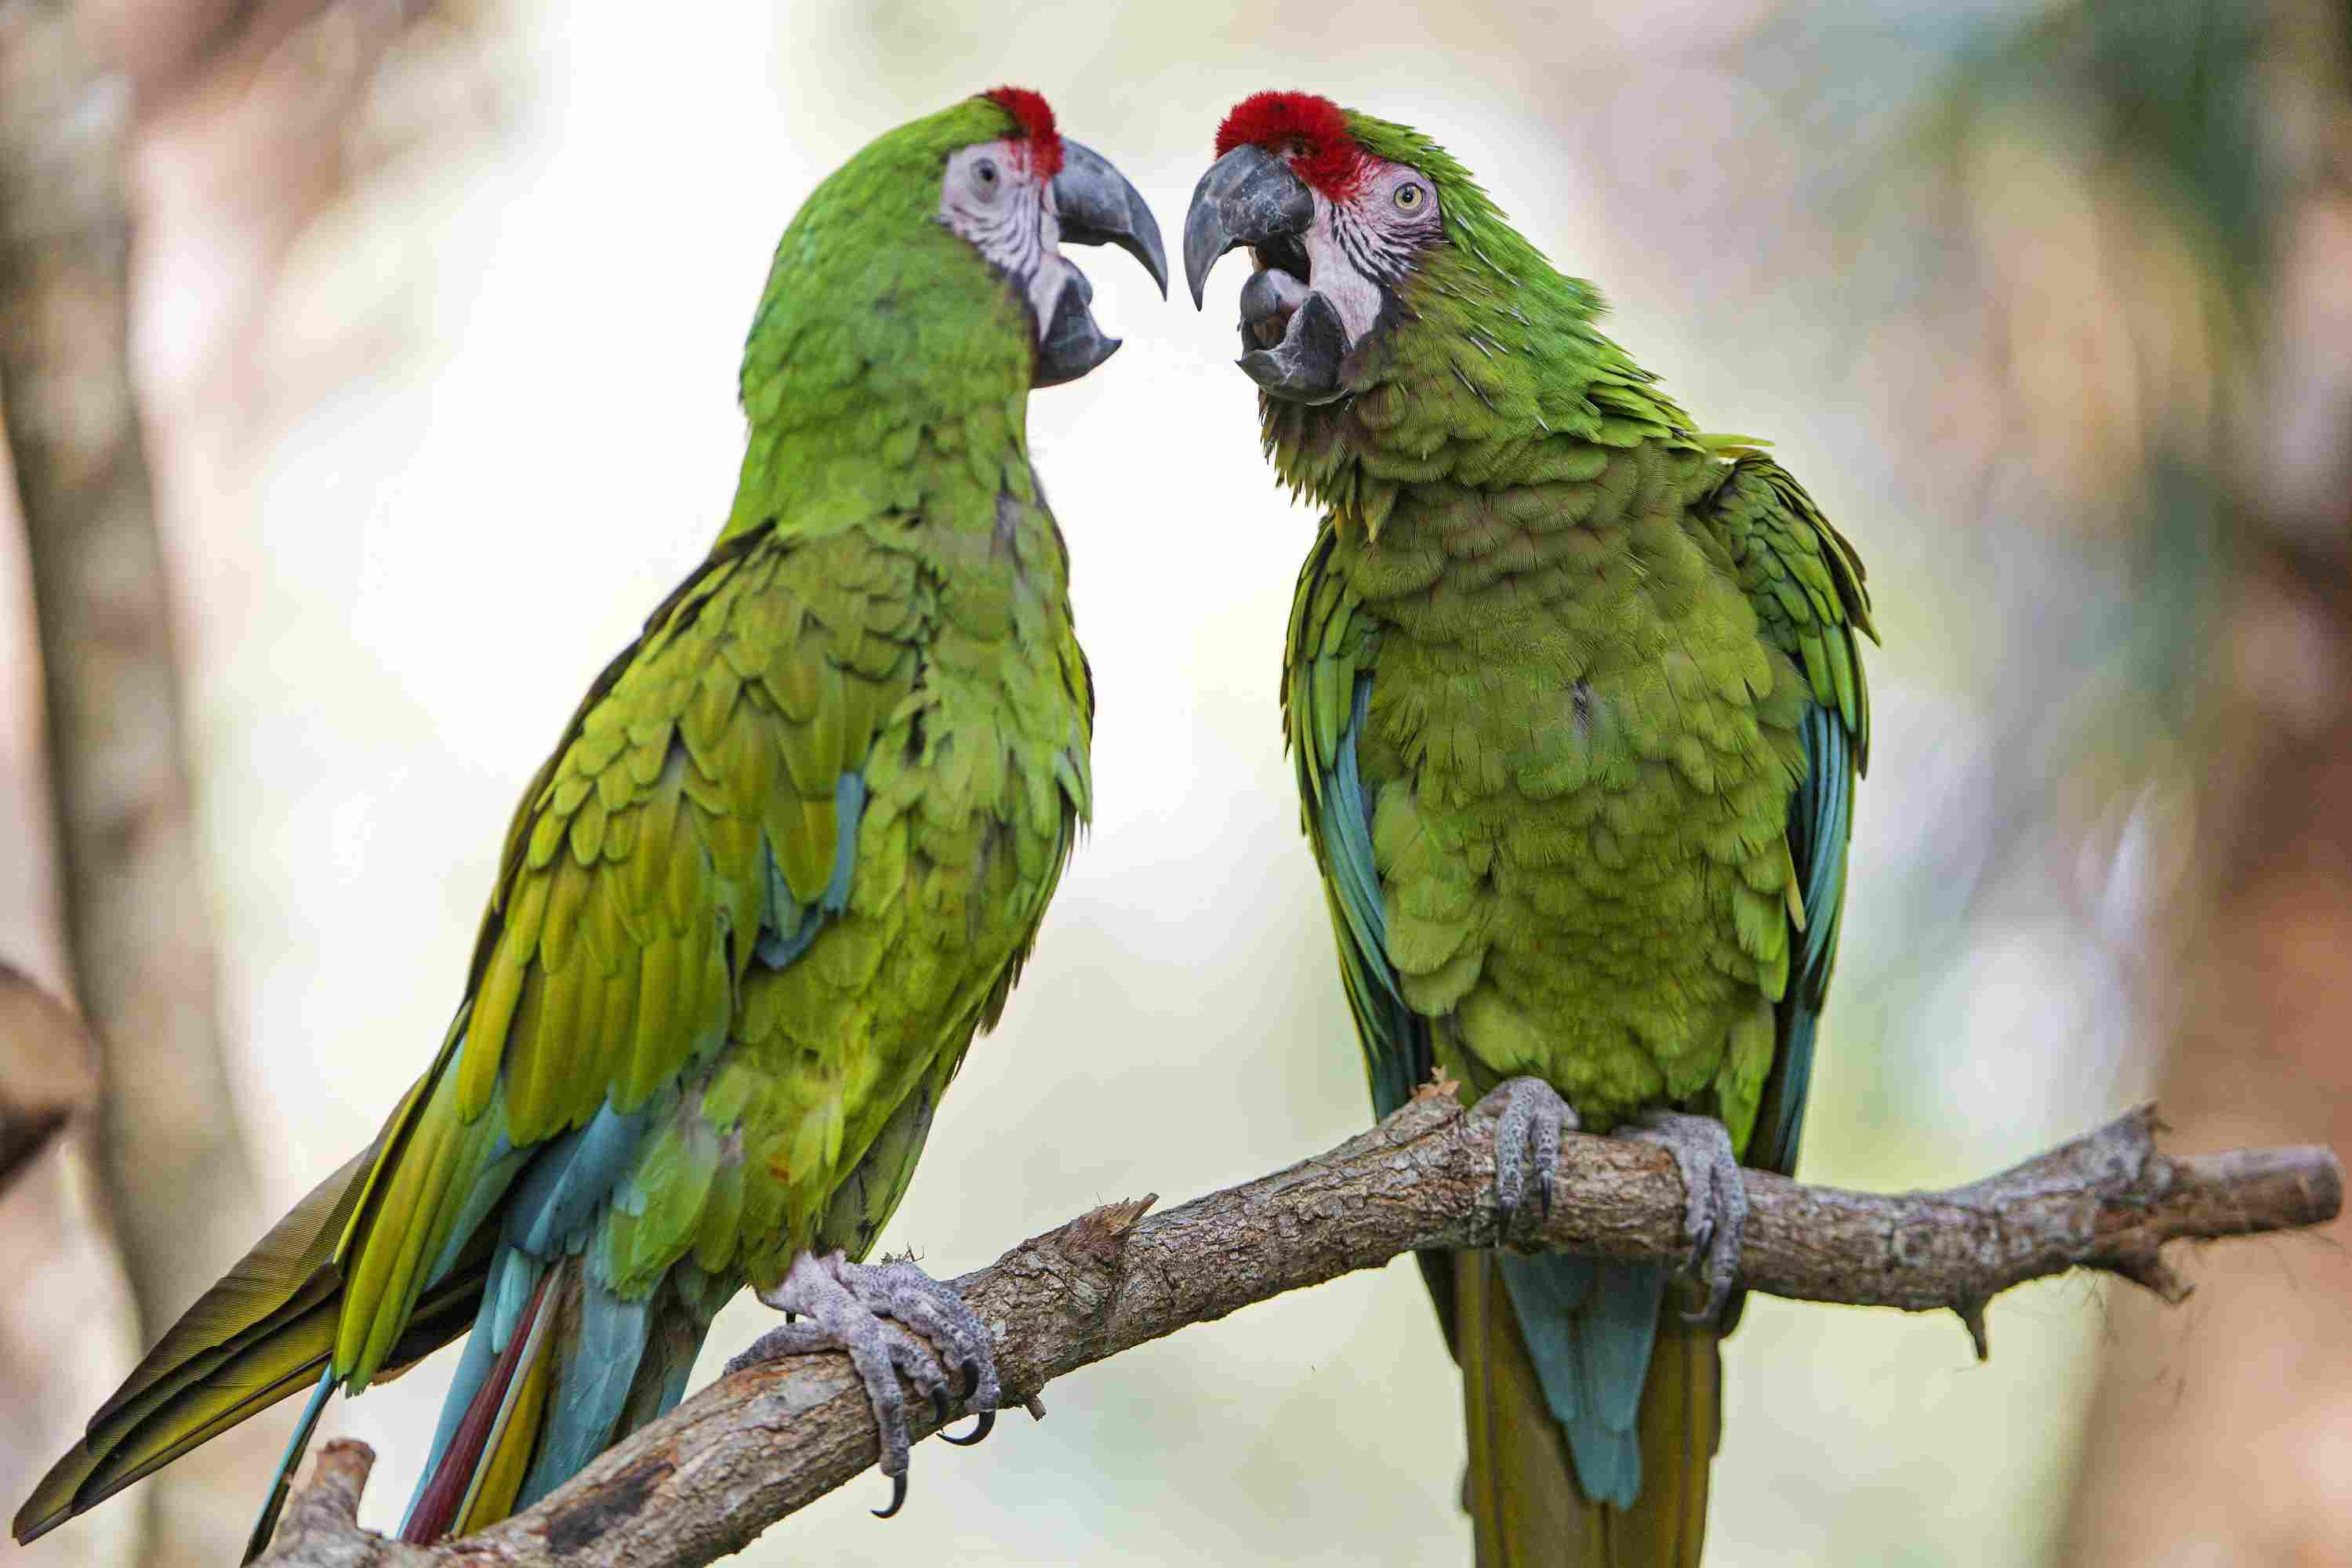 Two parrots sitting on a branch